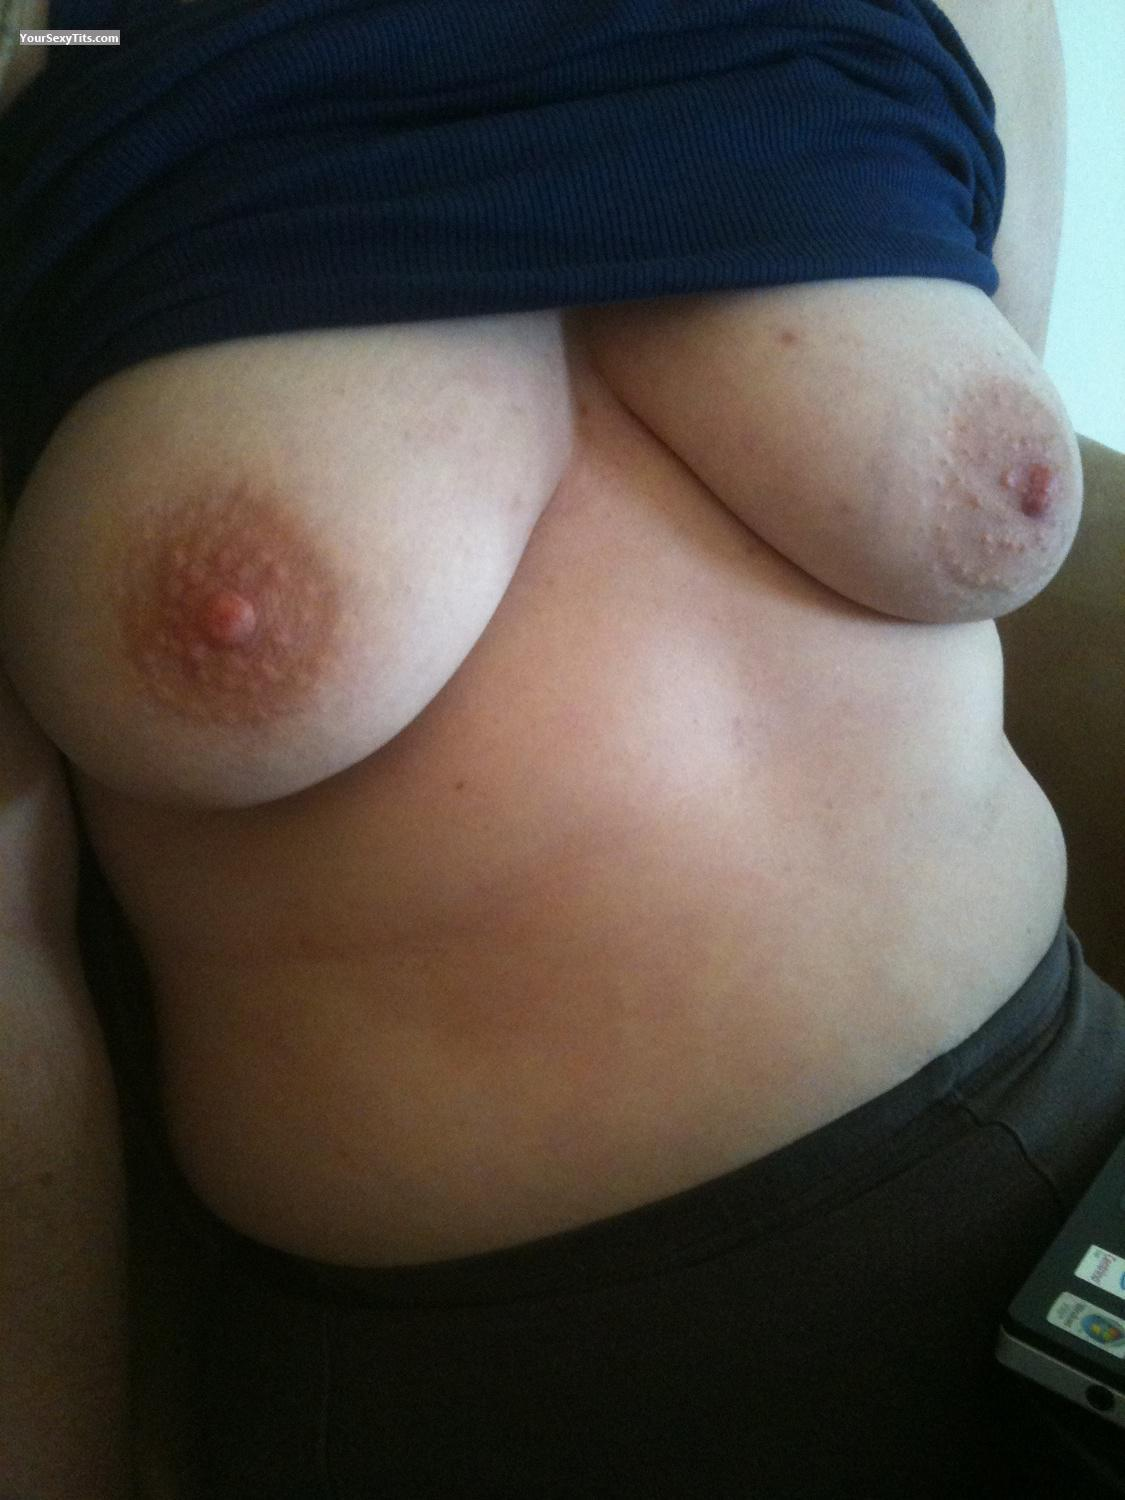 Medium Tits Shape?